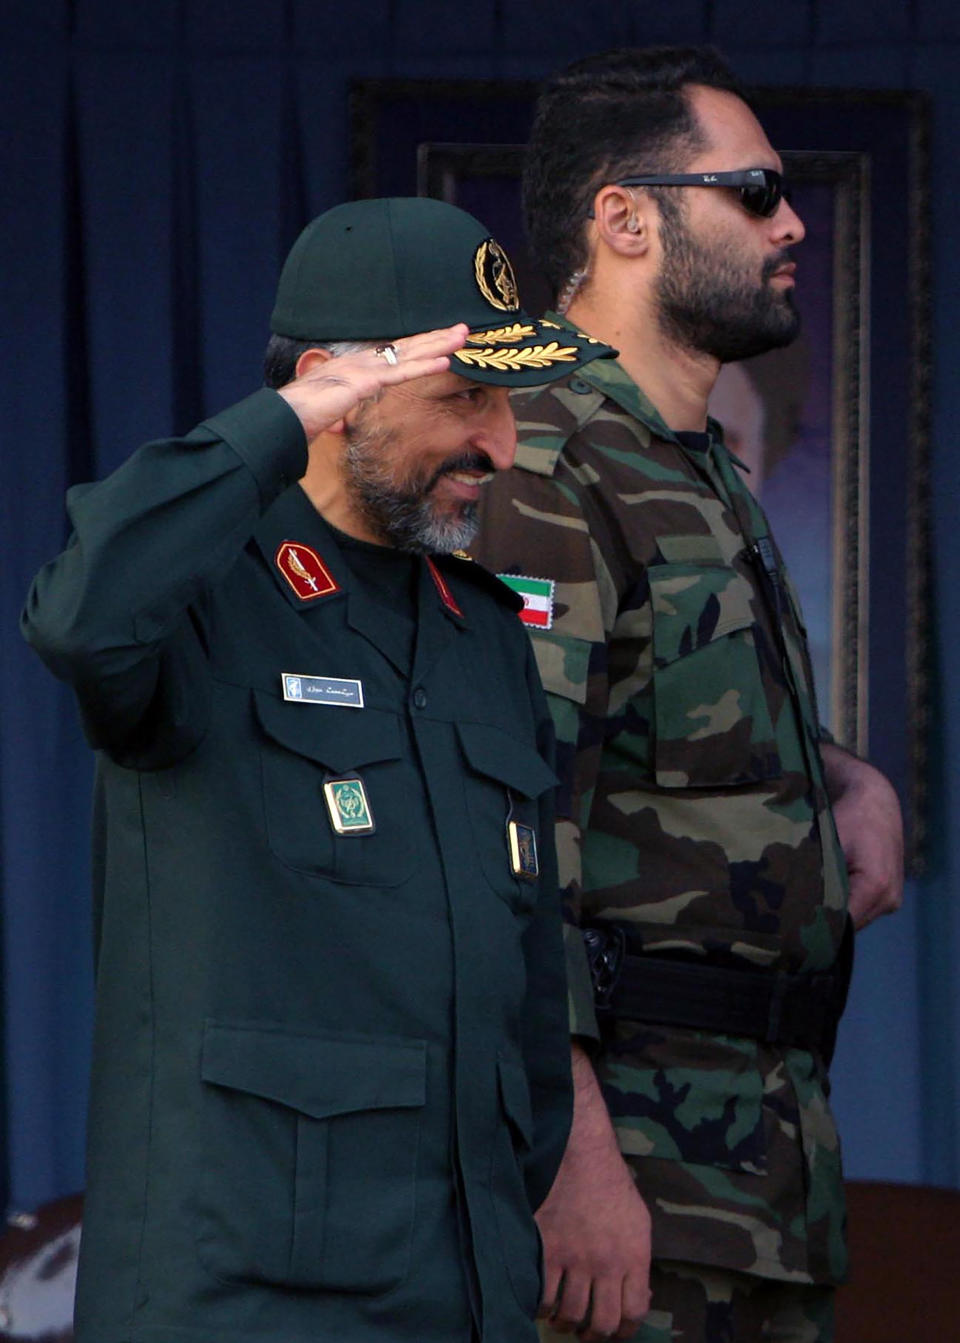 FILE - In this Sunday, Nov. 26, 2006, file photo, Brig. Gen. Mohammad Hosseinzadeh Hejazi salutes in a military parade in Tehran, Iran. Brig. Gen. Hejazi, deputy commander of the Quds, or Jerusalem, force of Iran's paramilitary Revolutionary Guard, has died, the Guard Corps announced on Sunday, April 18, 2021. The unit is an elite and influential group that oversees foreign operations, and Hejazi helped lead its expeditionary forces and frequently shuttled between Iraq, Lebanon and Syria. (AP Photo/Vahid Salemi, File)